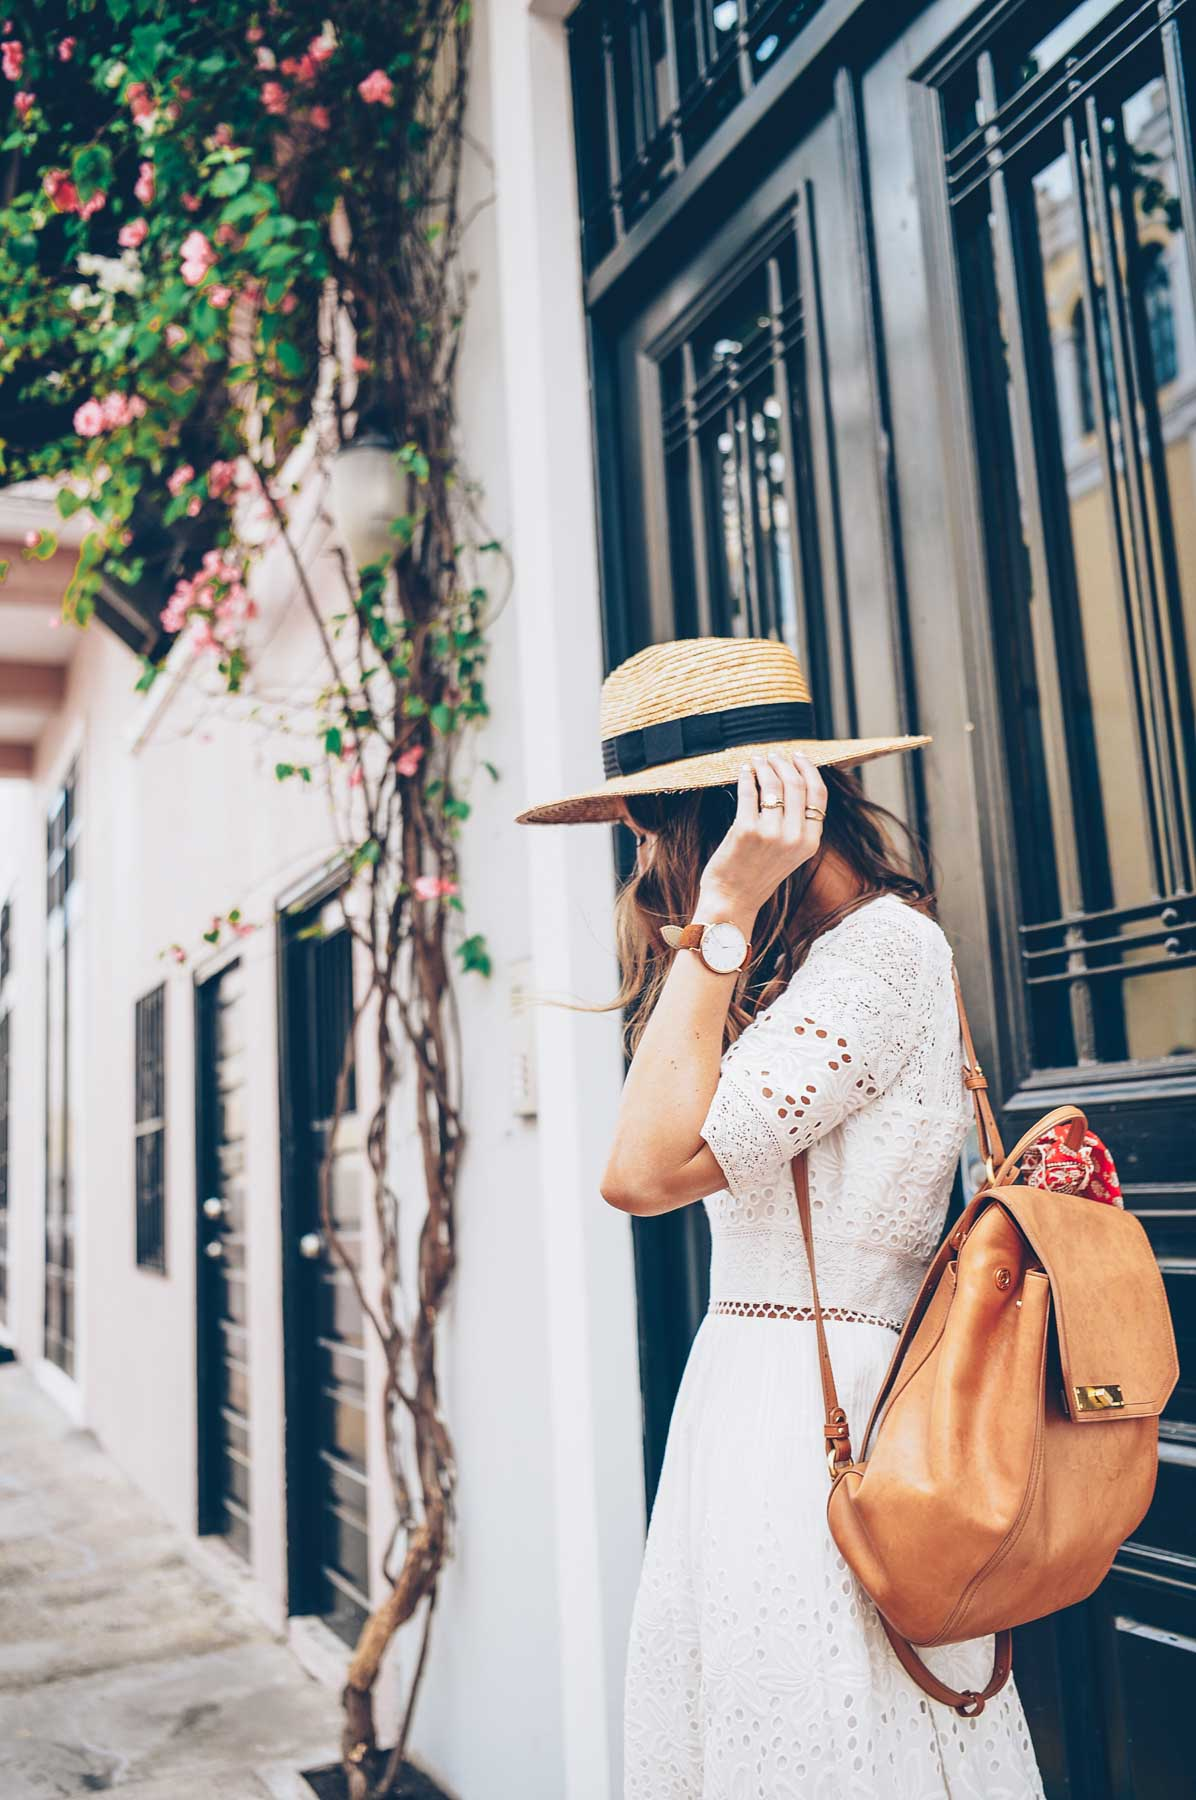 Jess Kirby wearing the Brahmin Southcoast backpack and Panama Hat with a white dress